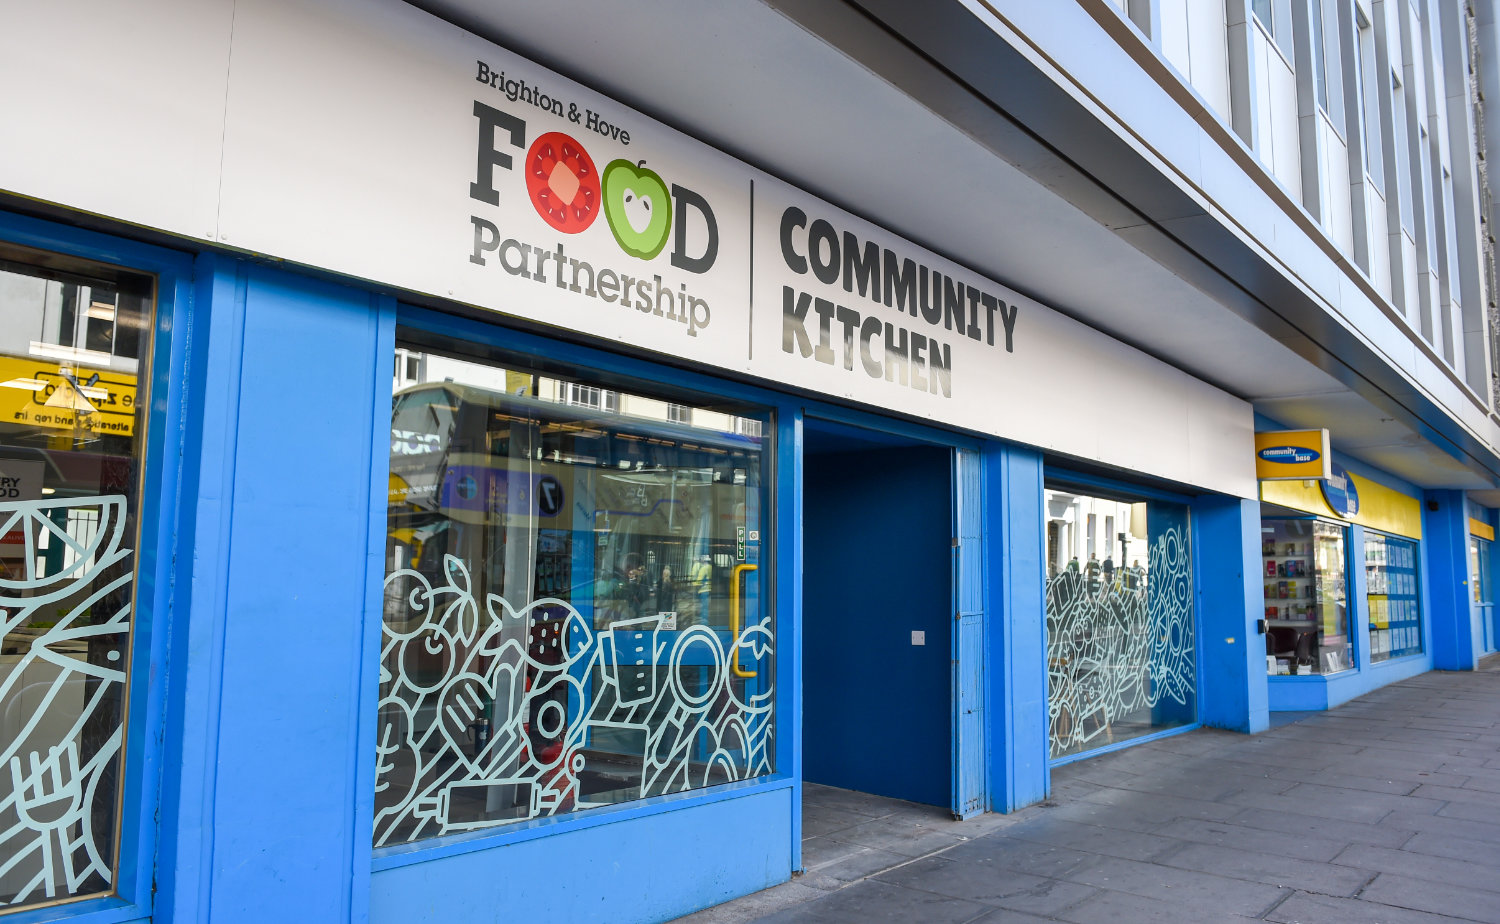 Brighton and Hove Food Partnership, Queens Road, Brighton